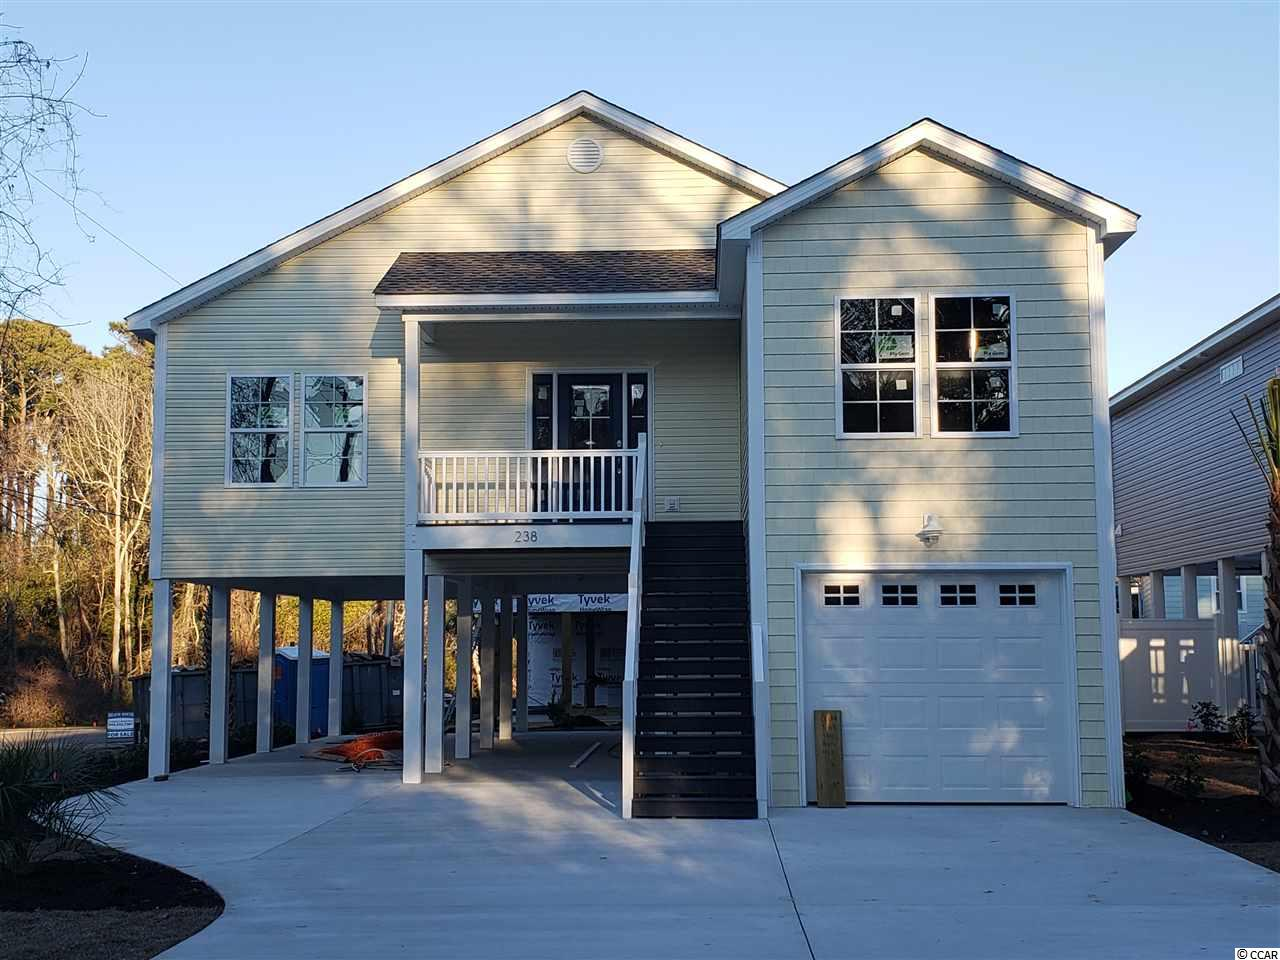 4BR / 3BA new construction raised beach home 2 blocks from the ocean in the Crescent Beach section of NMB. - Home to feature : 9 & 10' ceilings, crown molding, granite countertops in kitchen and baths, tile shower and double vanity in master, full appliance package, concrete drive and fully landscaped yard. Great floor plan with large bedroom and bath on ground floor with interior staircase.